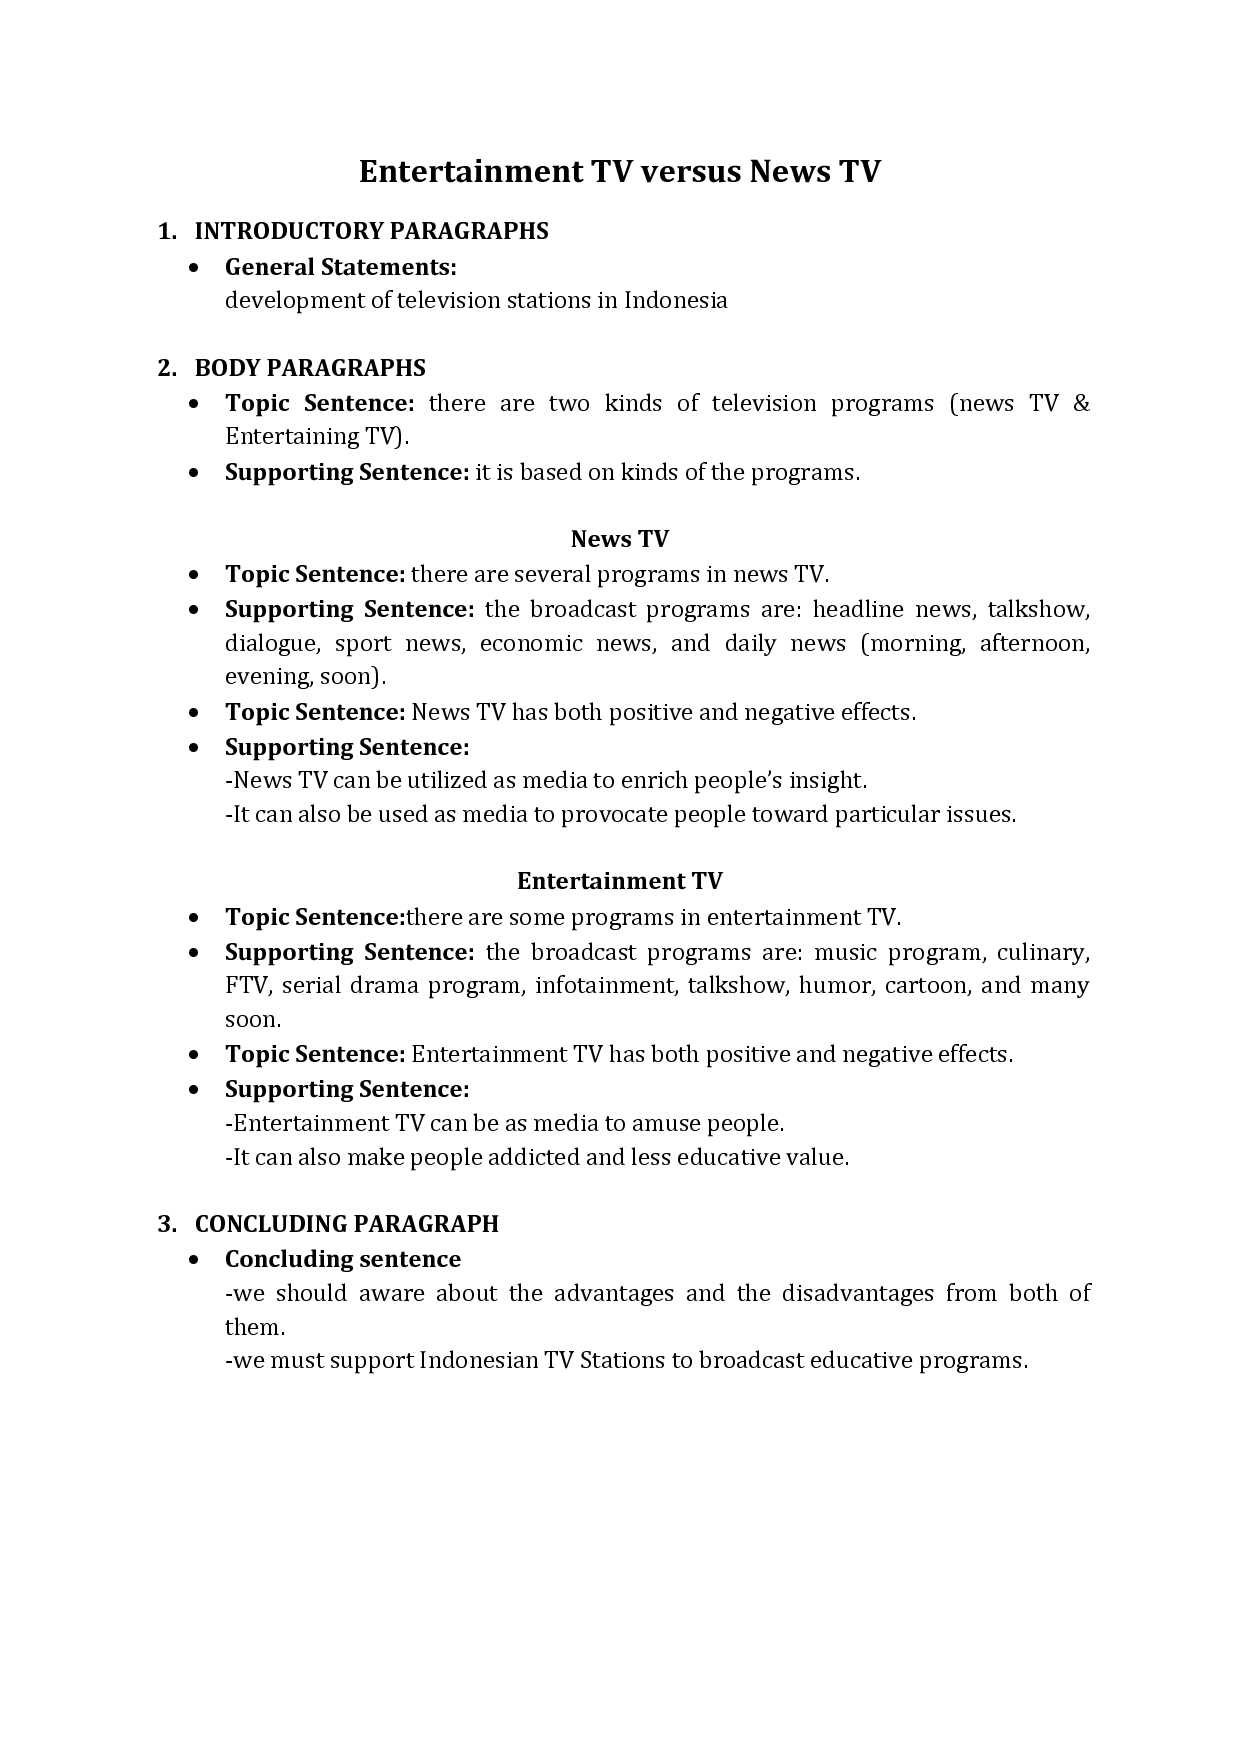 011 Outline Essay Colleges And Search On Pinterest In Format Fascinating About Immigration Tok Structure Definition Full